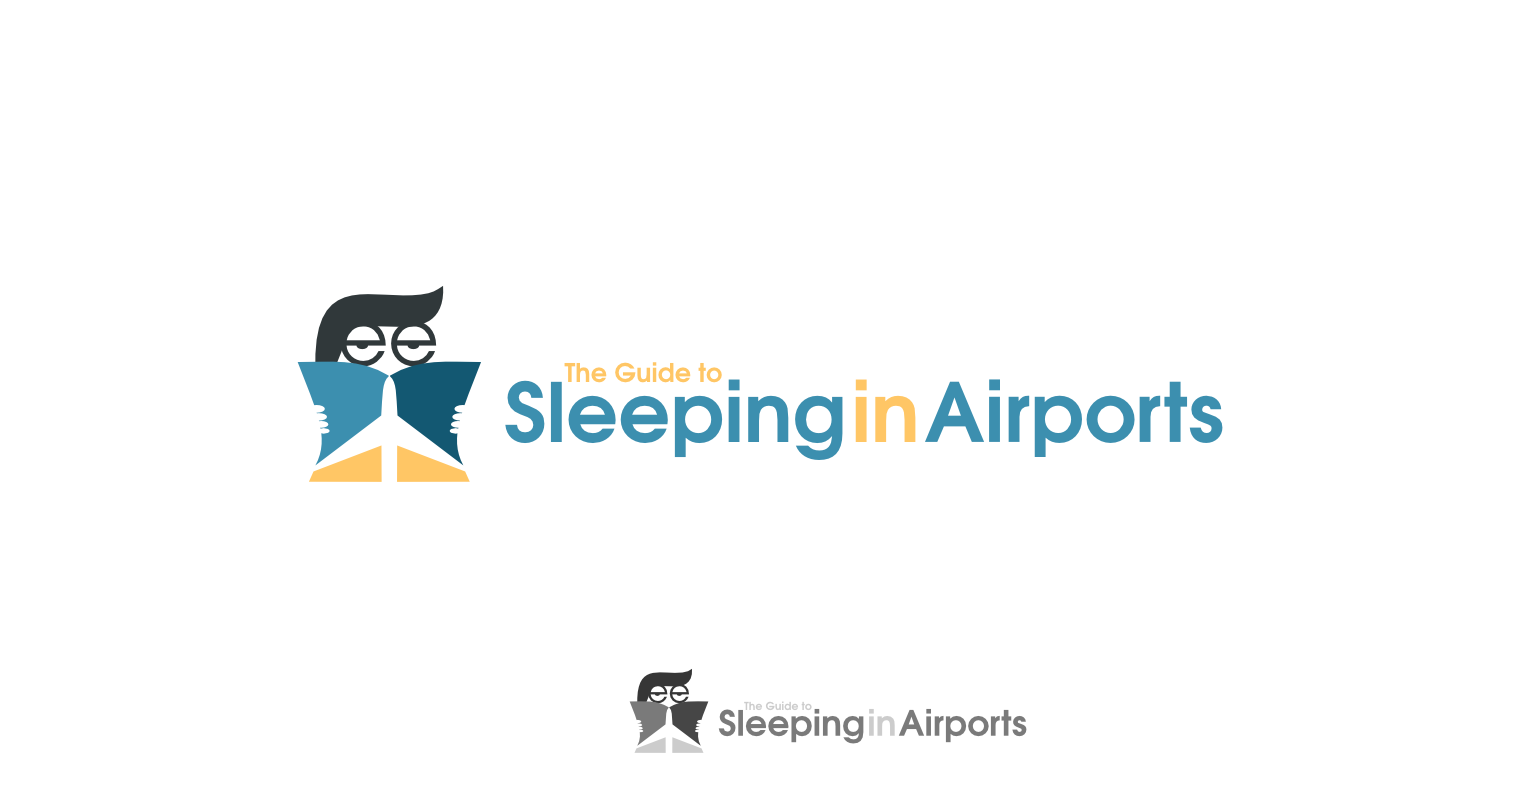 Create the new logo for The Guide to Sleeping in Airports